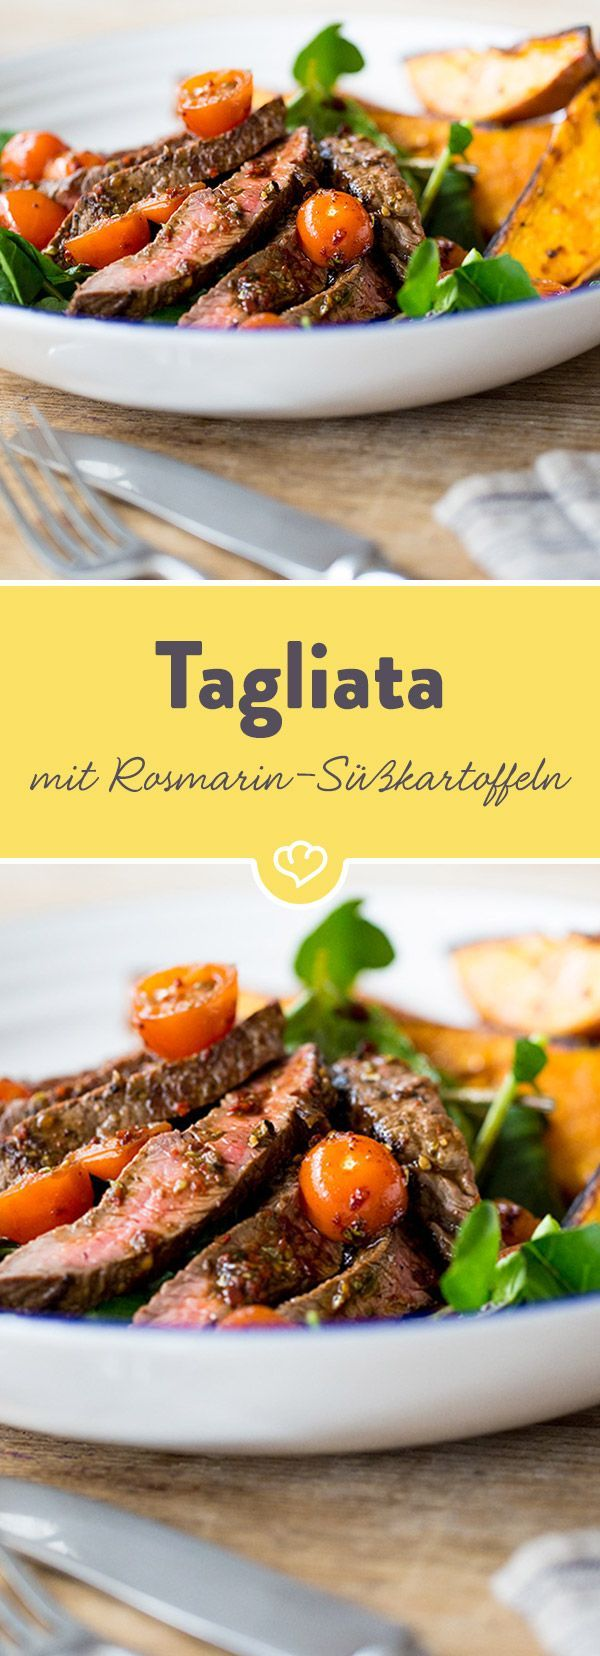 Steak tagliata with rosemary sweet potatoes and watercress